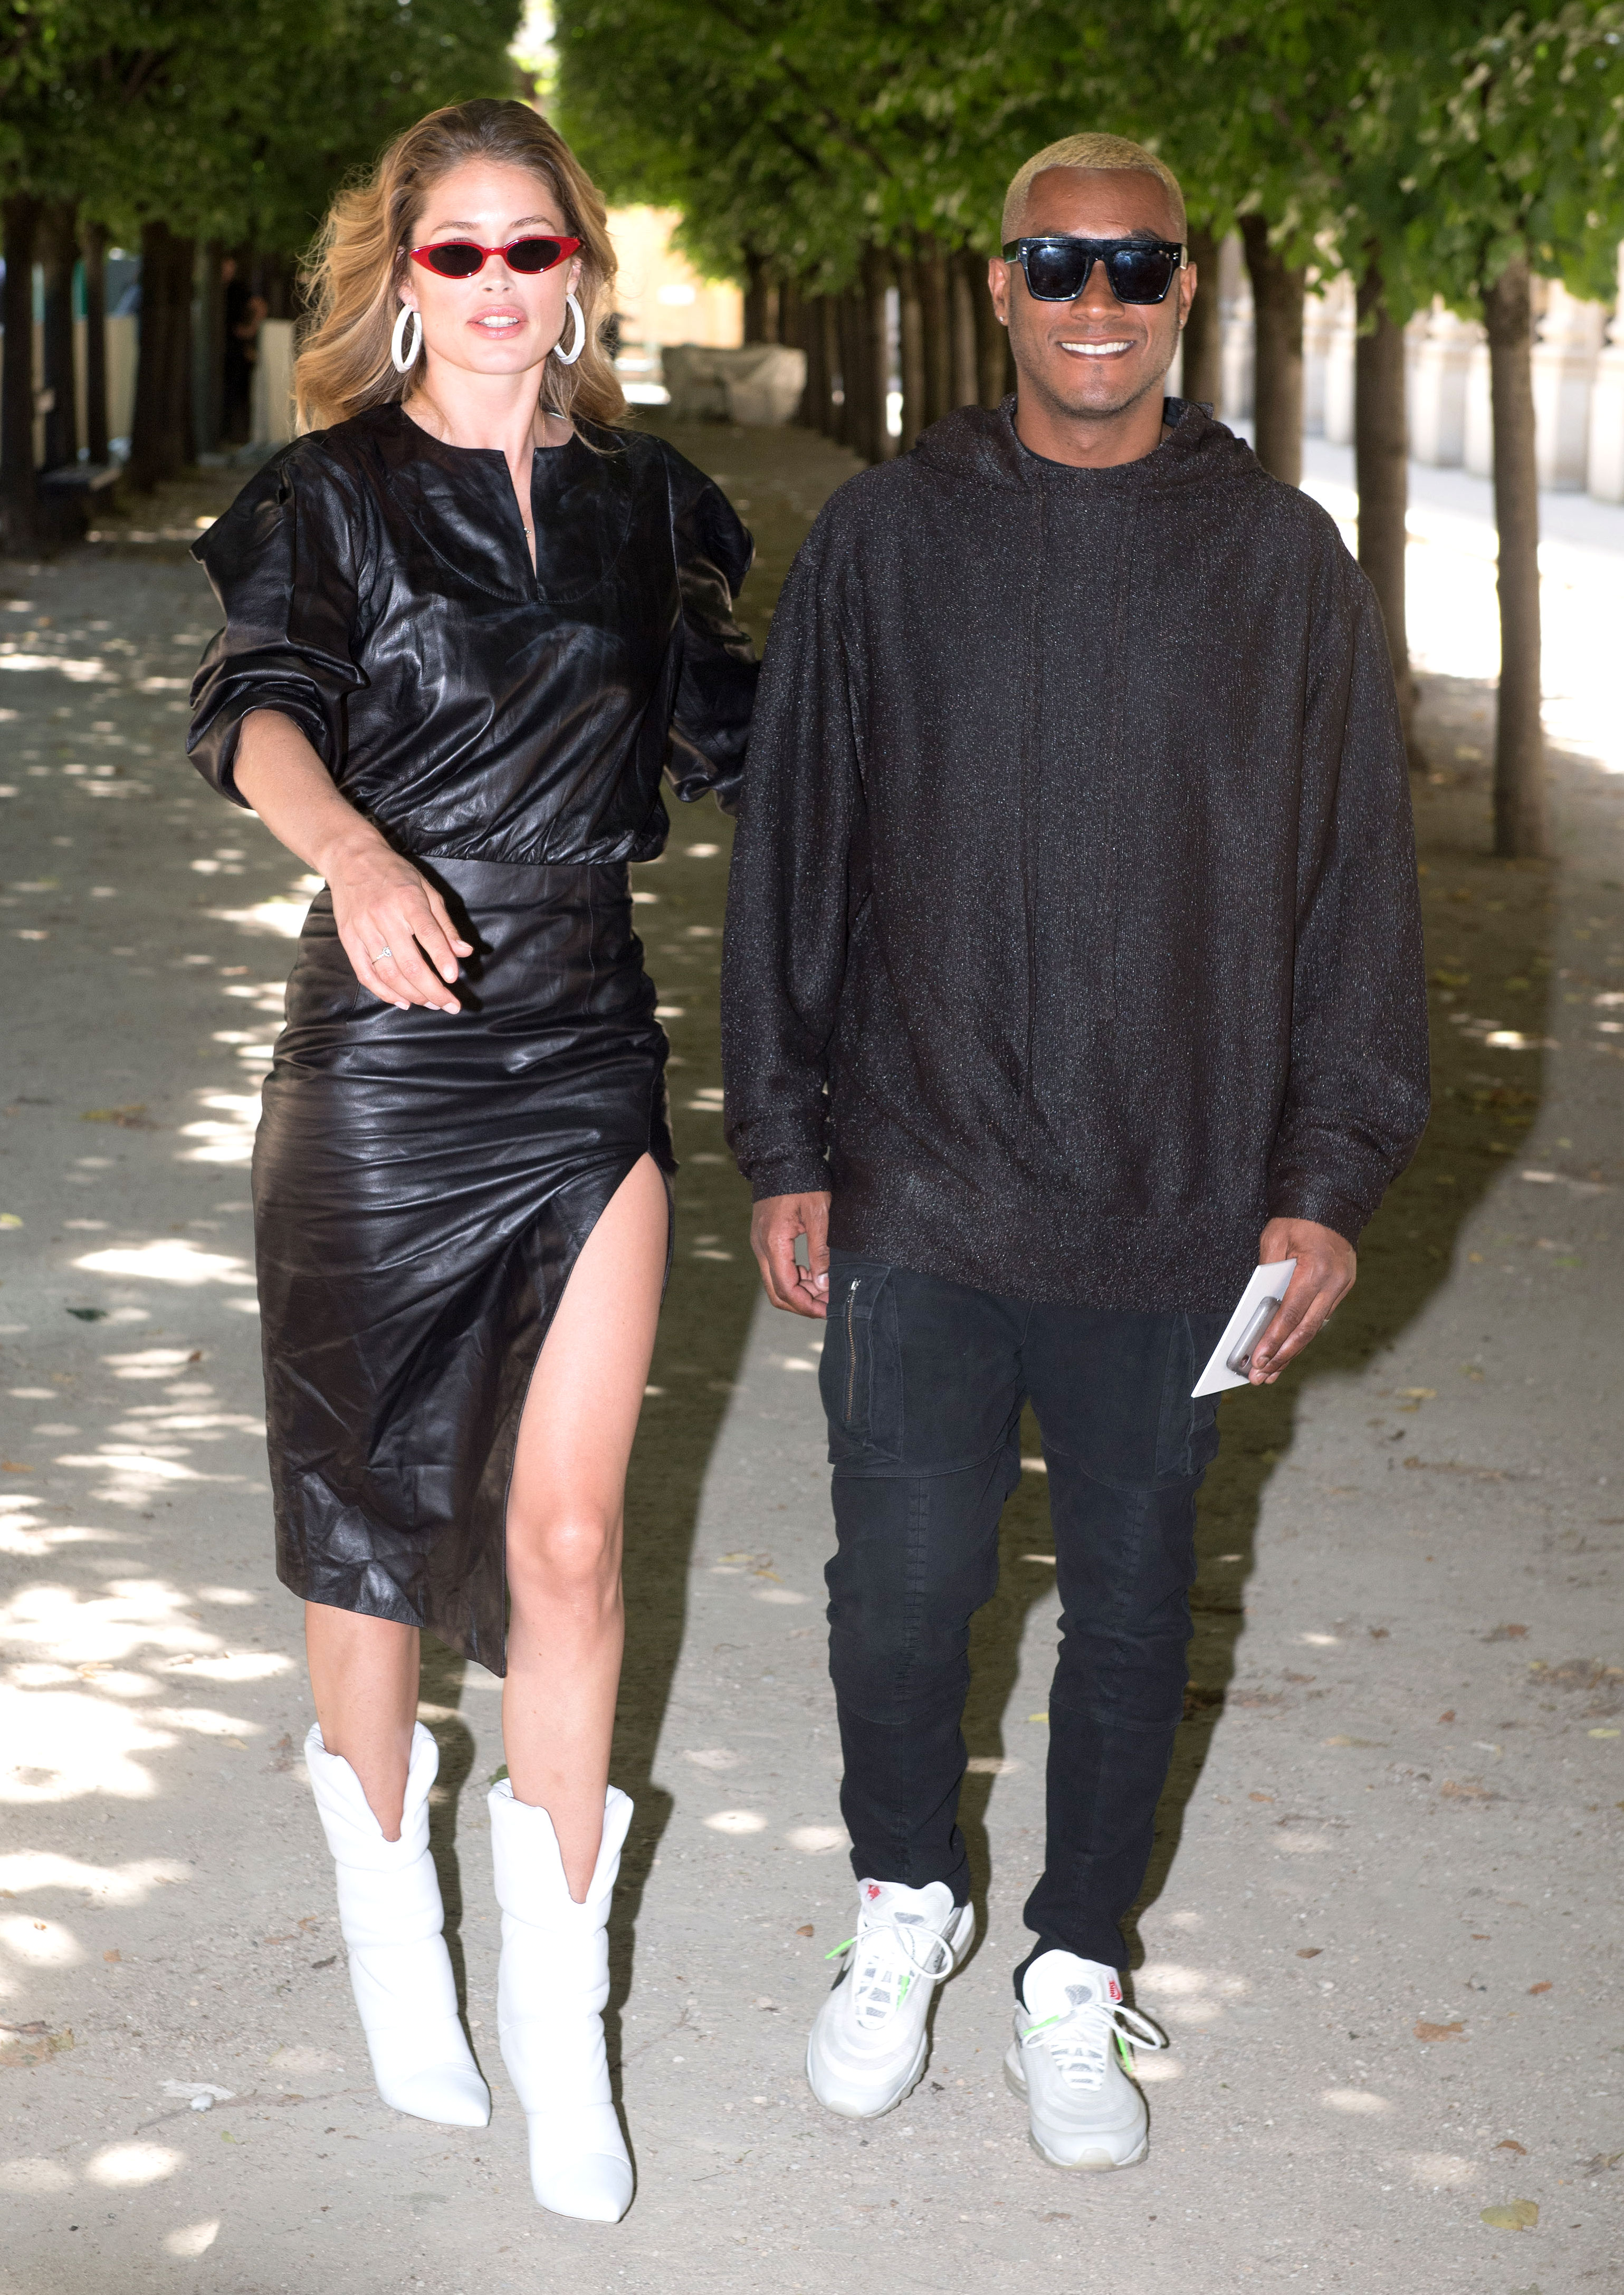 Doutzen Kroes and husband Sunnery James - The couple that color coordinates together, stays together. Or at least that's our take on the supermodel's black leather midi and white boot look at the Louis Vuitton show on Thursday, June 21, that pairs perfectly with her hubby's black sweat sweatshirt, jeans and white sneakers.